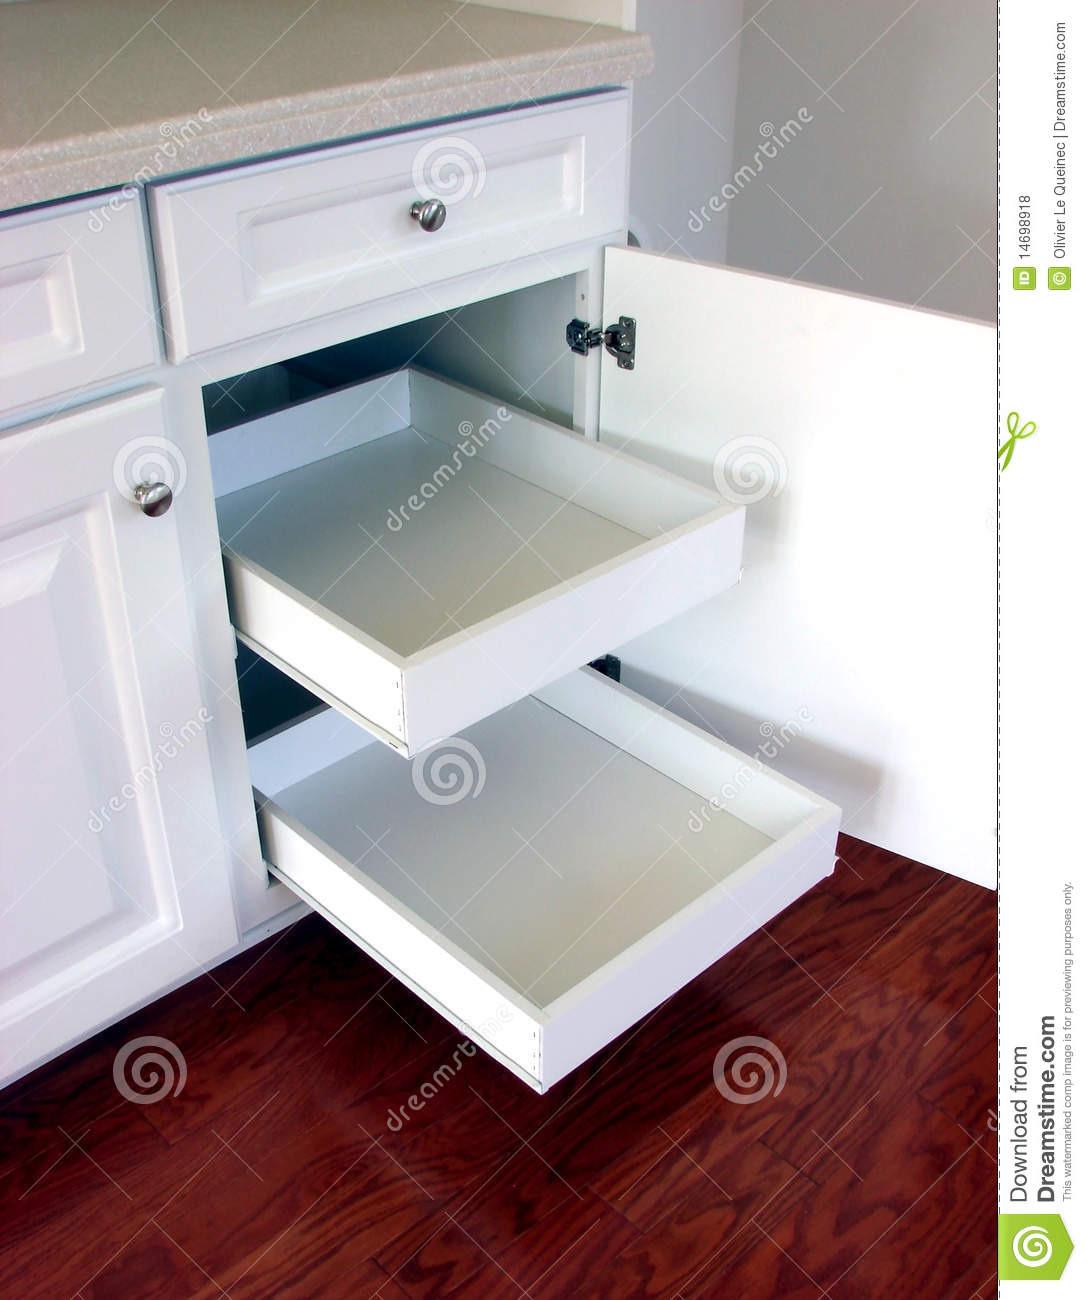 Pull Out Kitchen Drawers Shelves In A Modern House Stock Photo ...